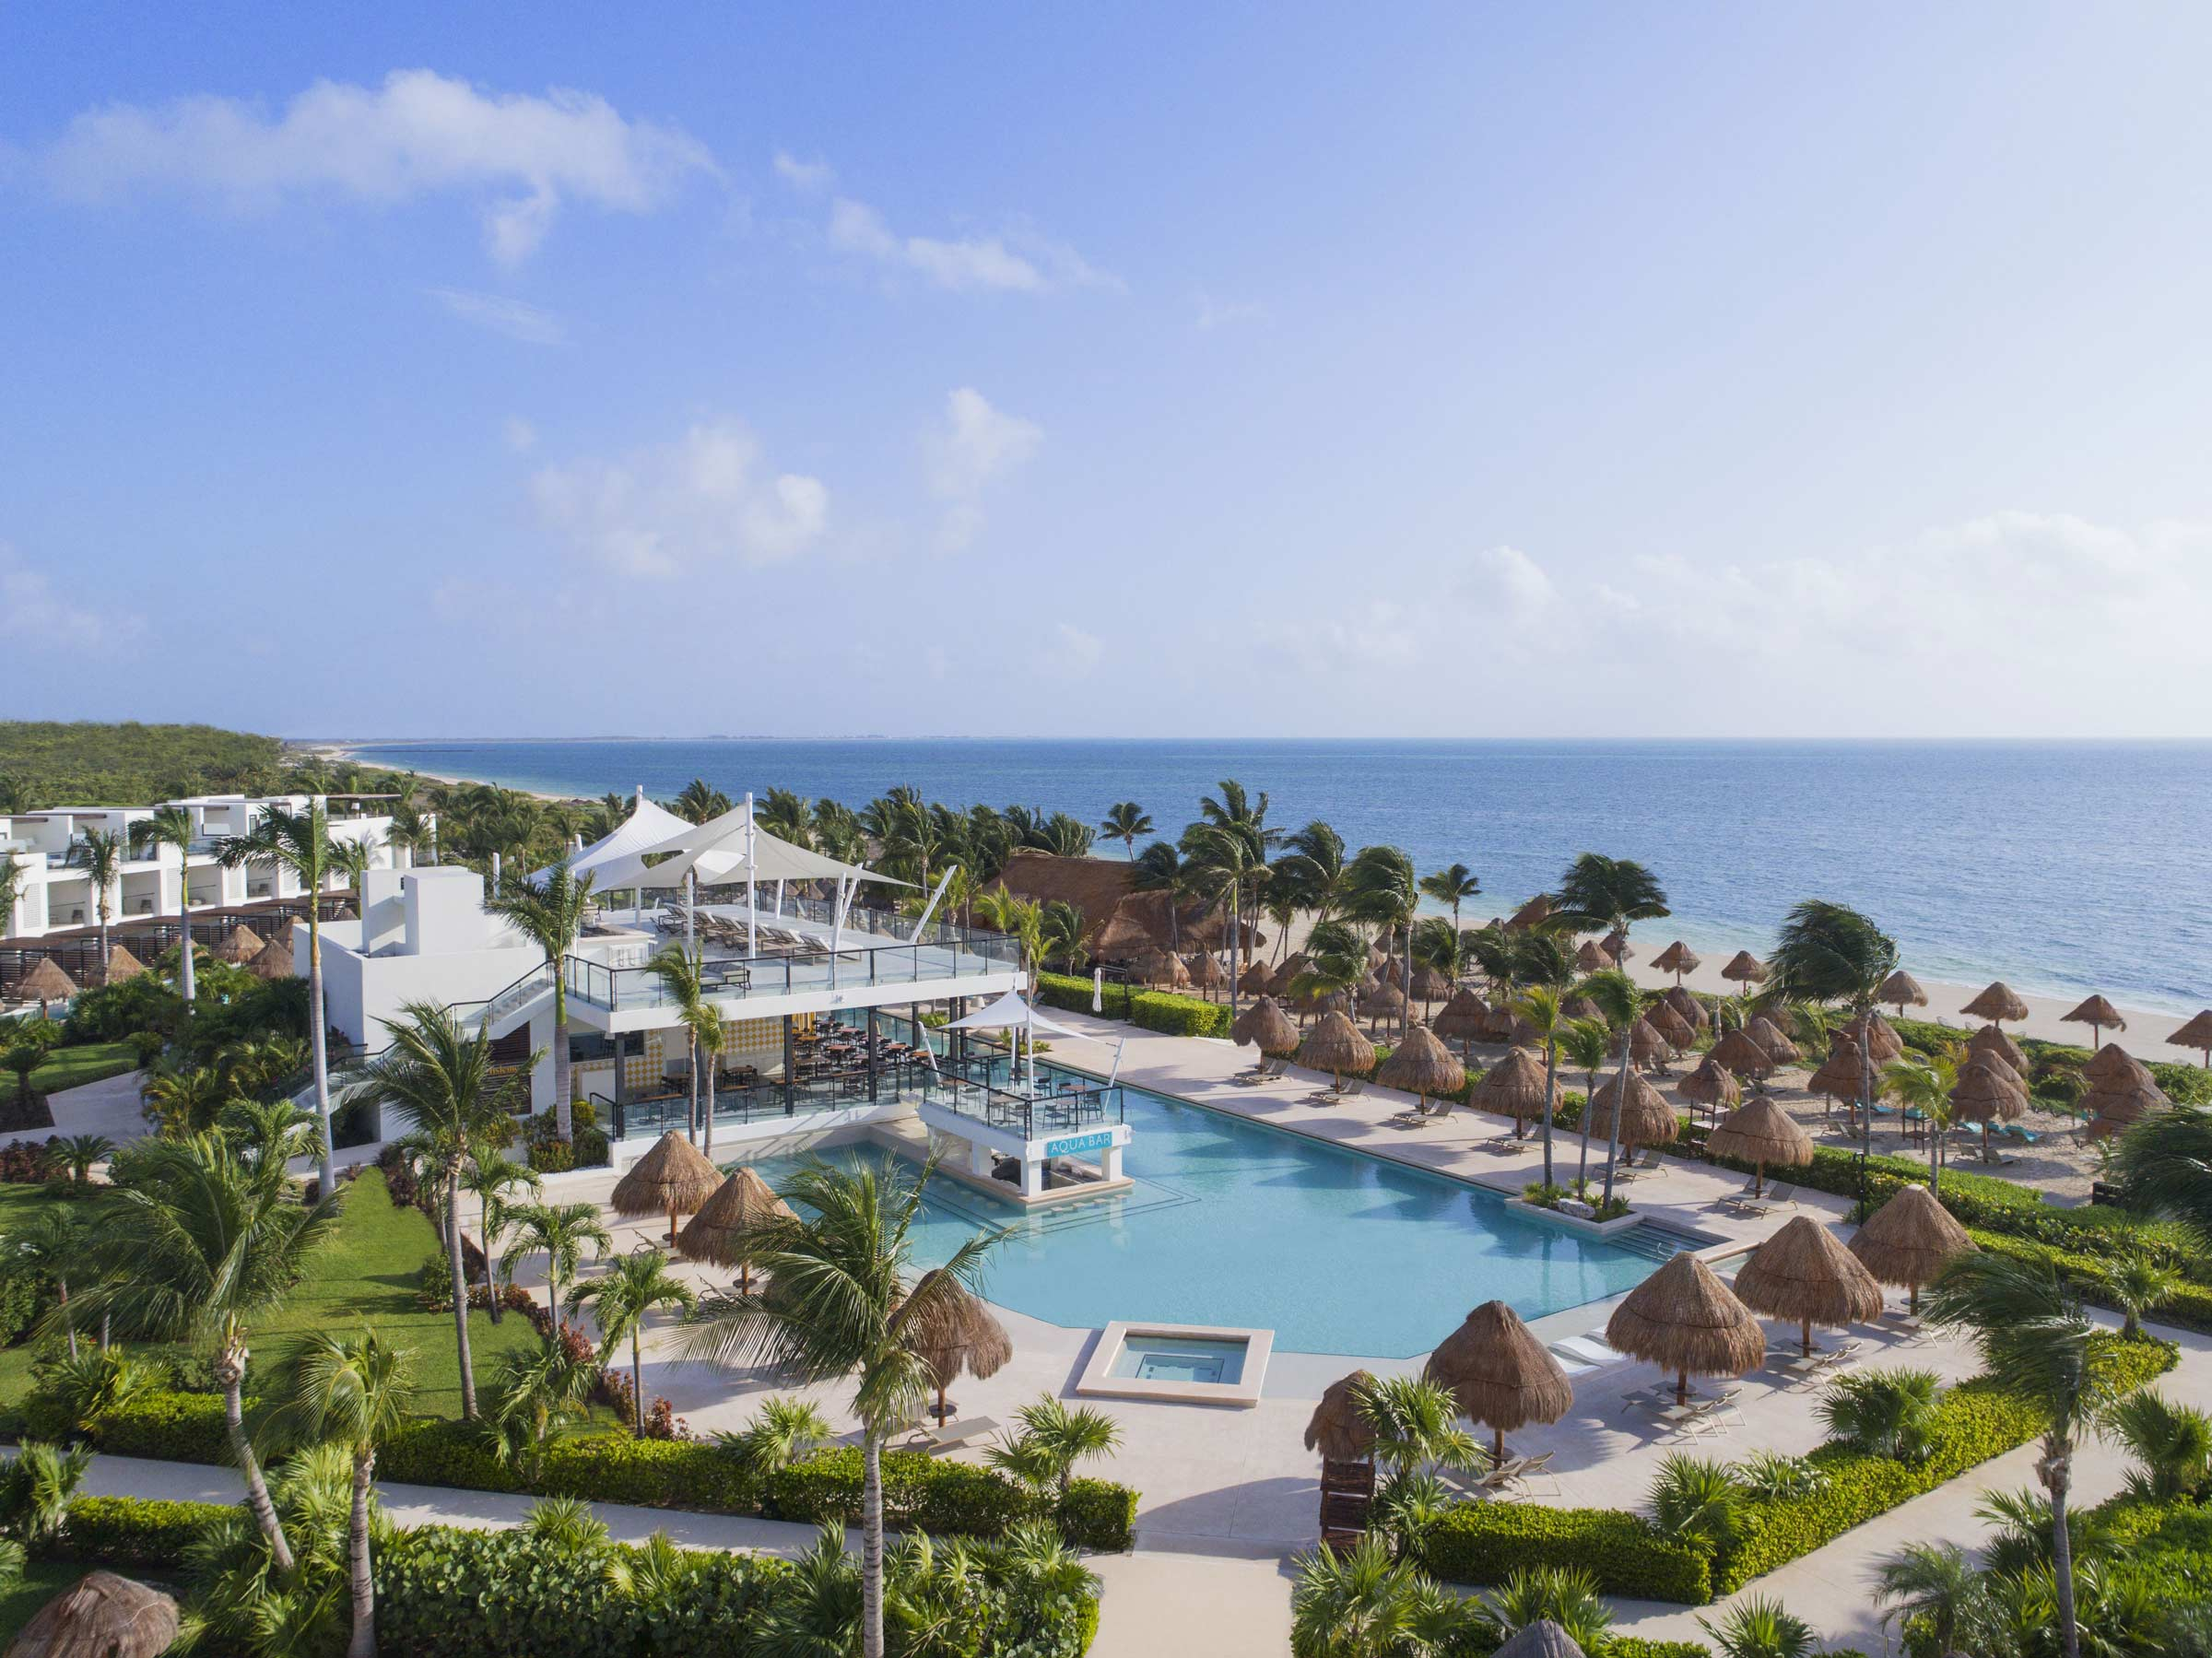 Overview of the best all inclusive adults only resorts in Cancun